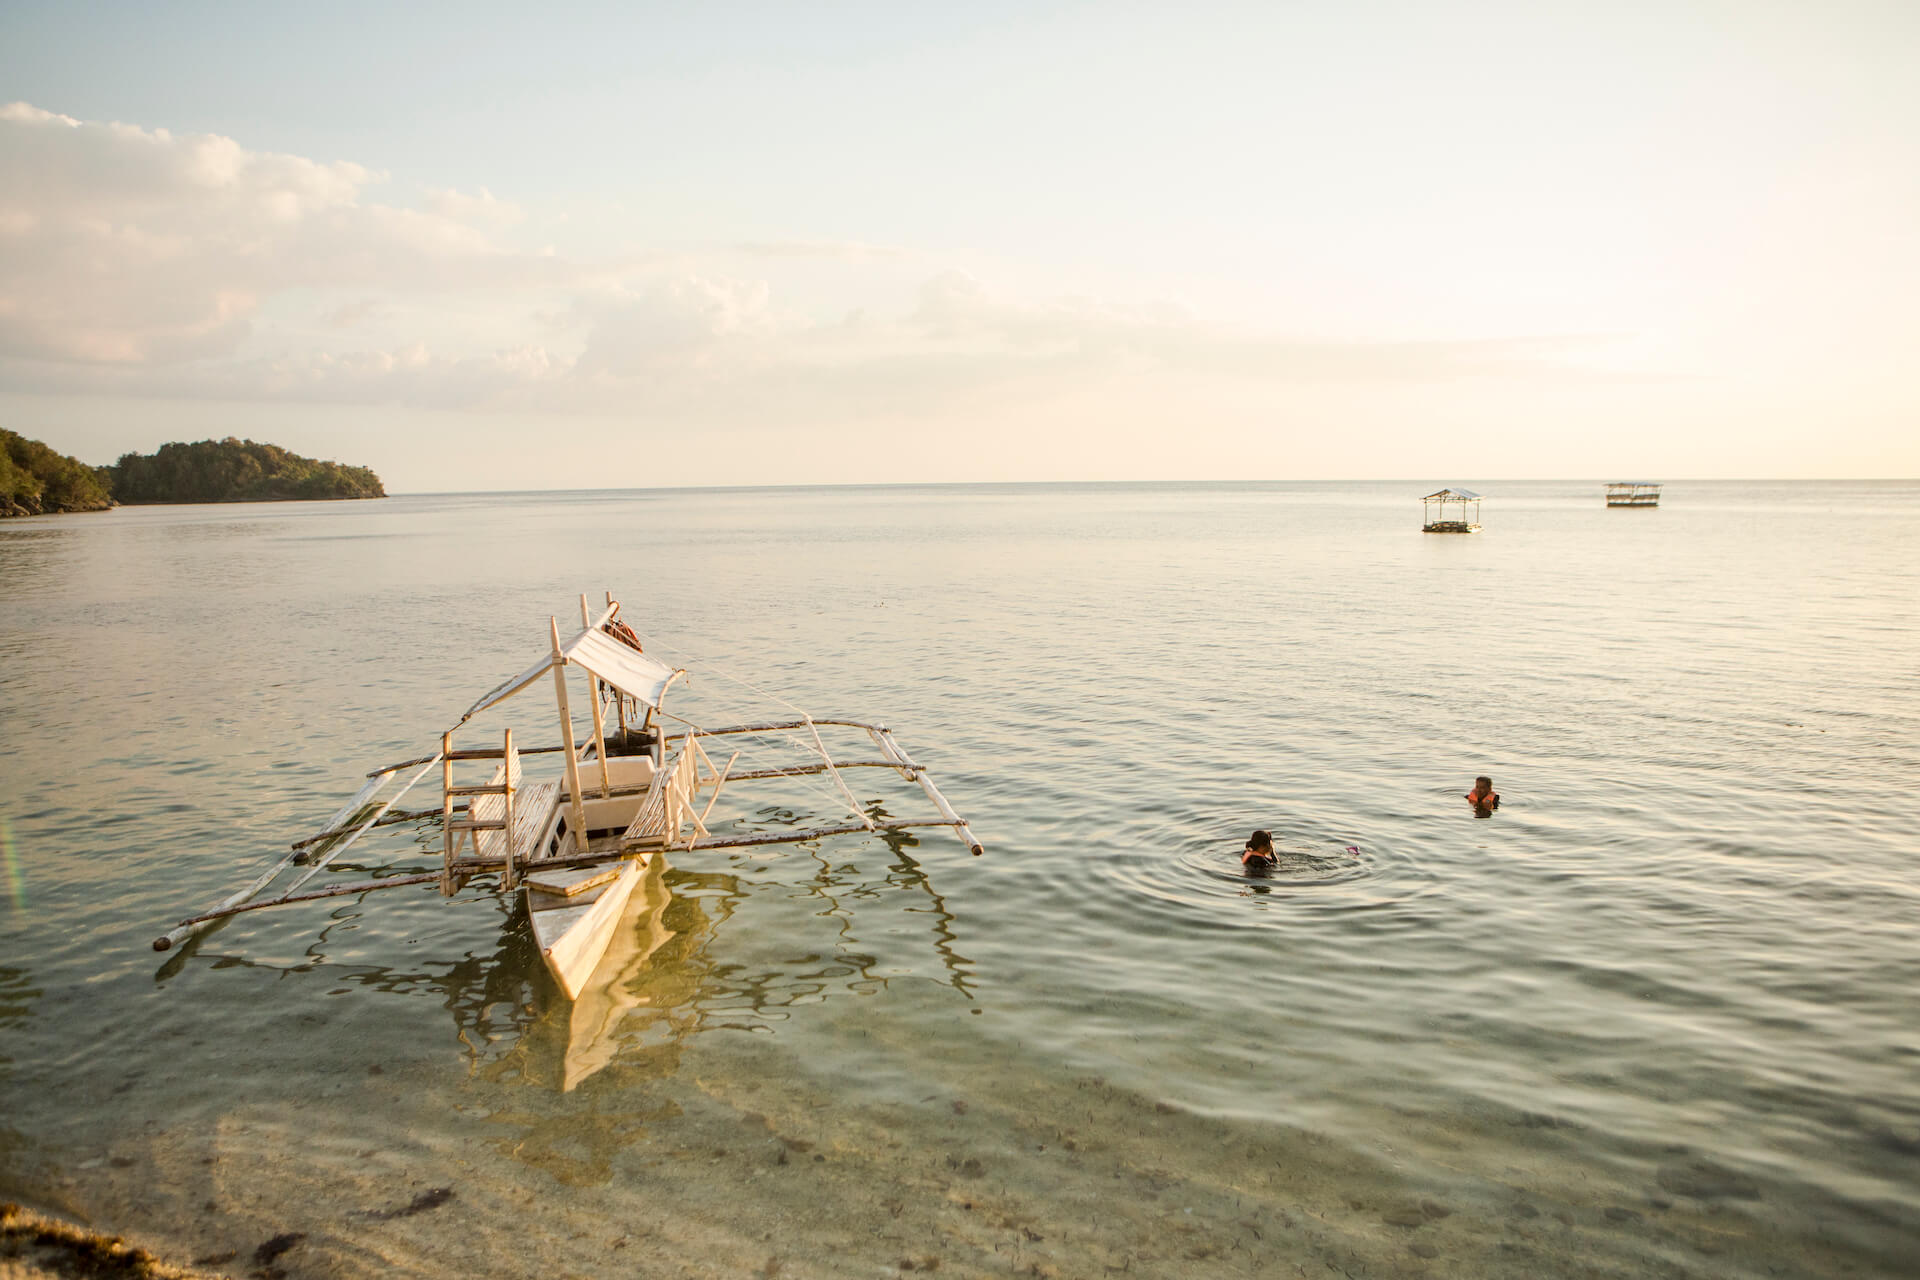 In 1994, a worldwide effort saved Danjugan Island from environmental ruin. Years later, it's become a paradise on earth.